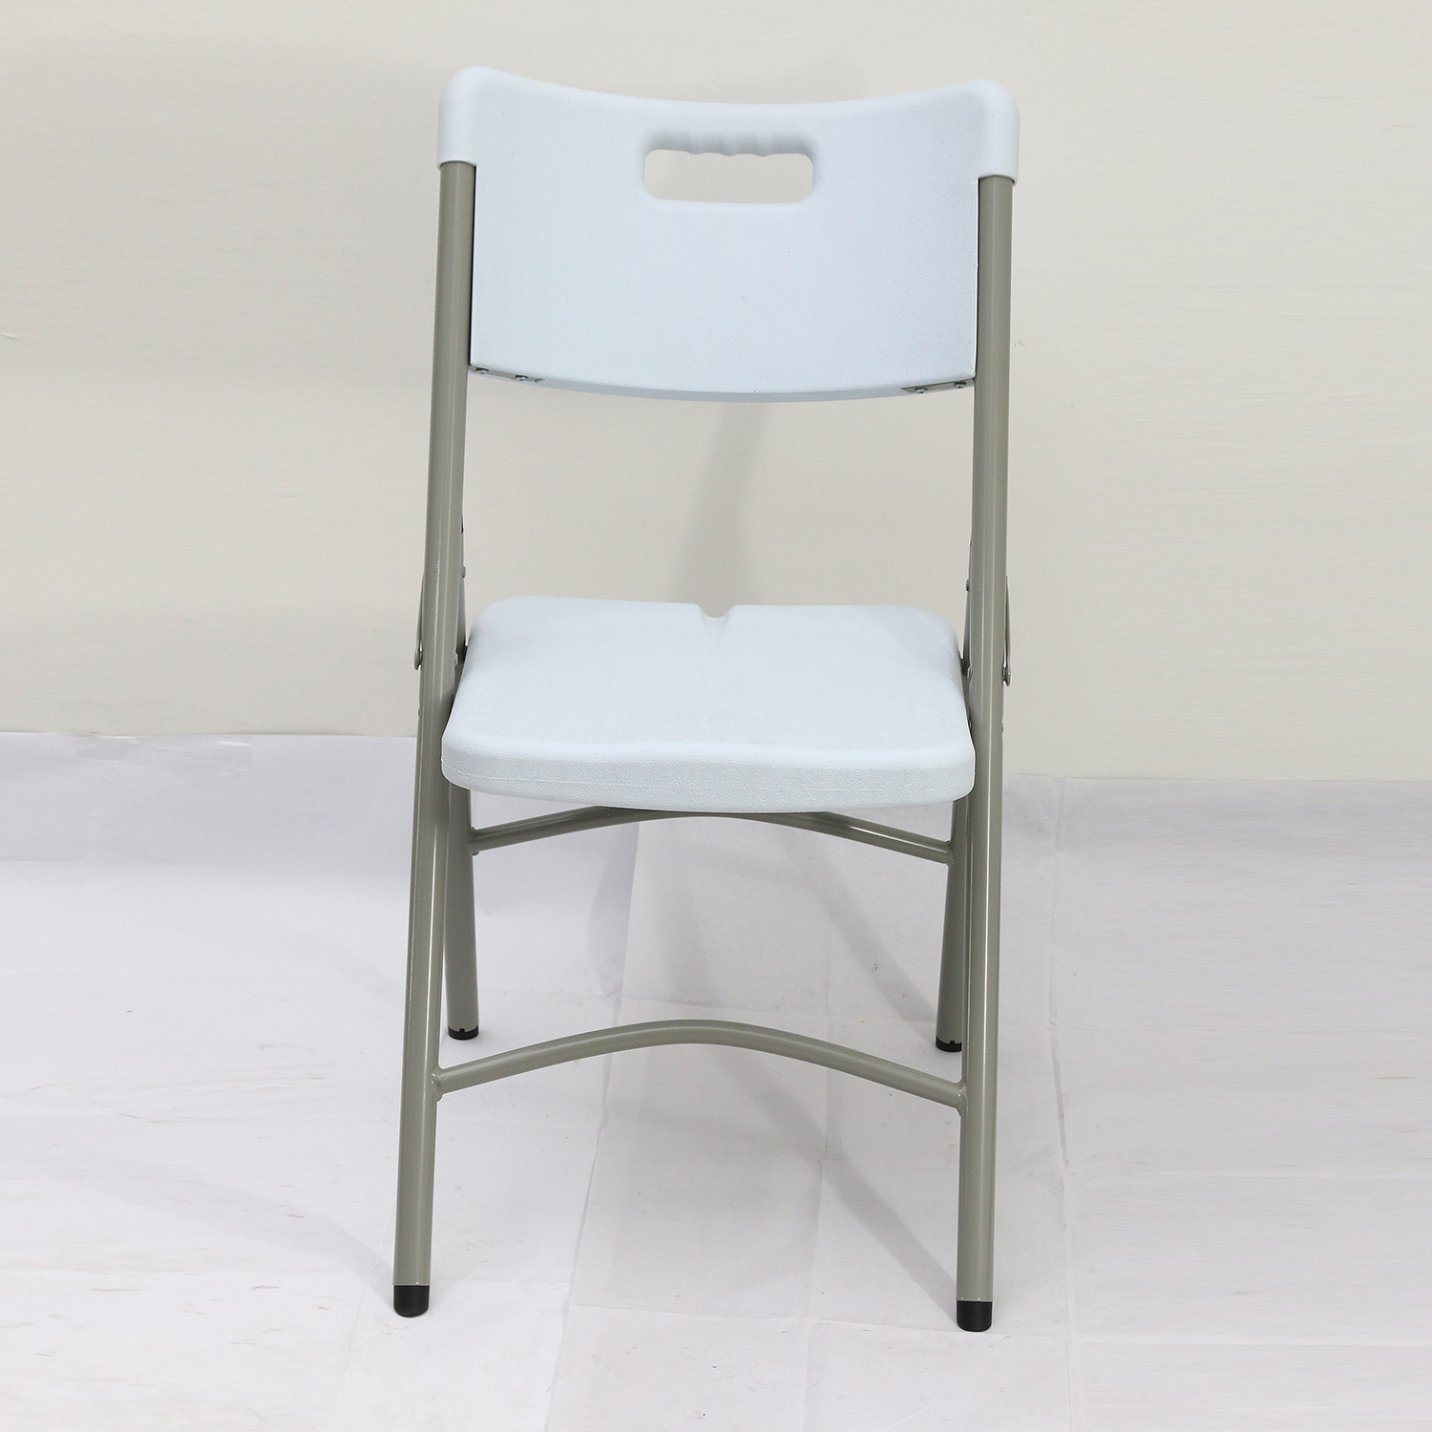 used plastic folding chairs wholesale office big and tall china price outdoor furniture chair high quality